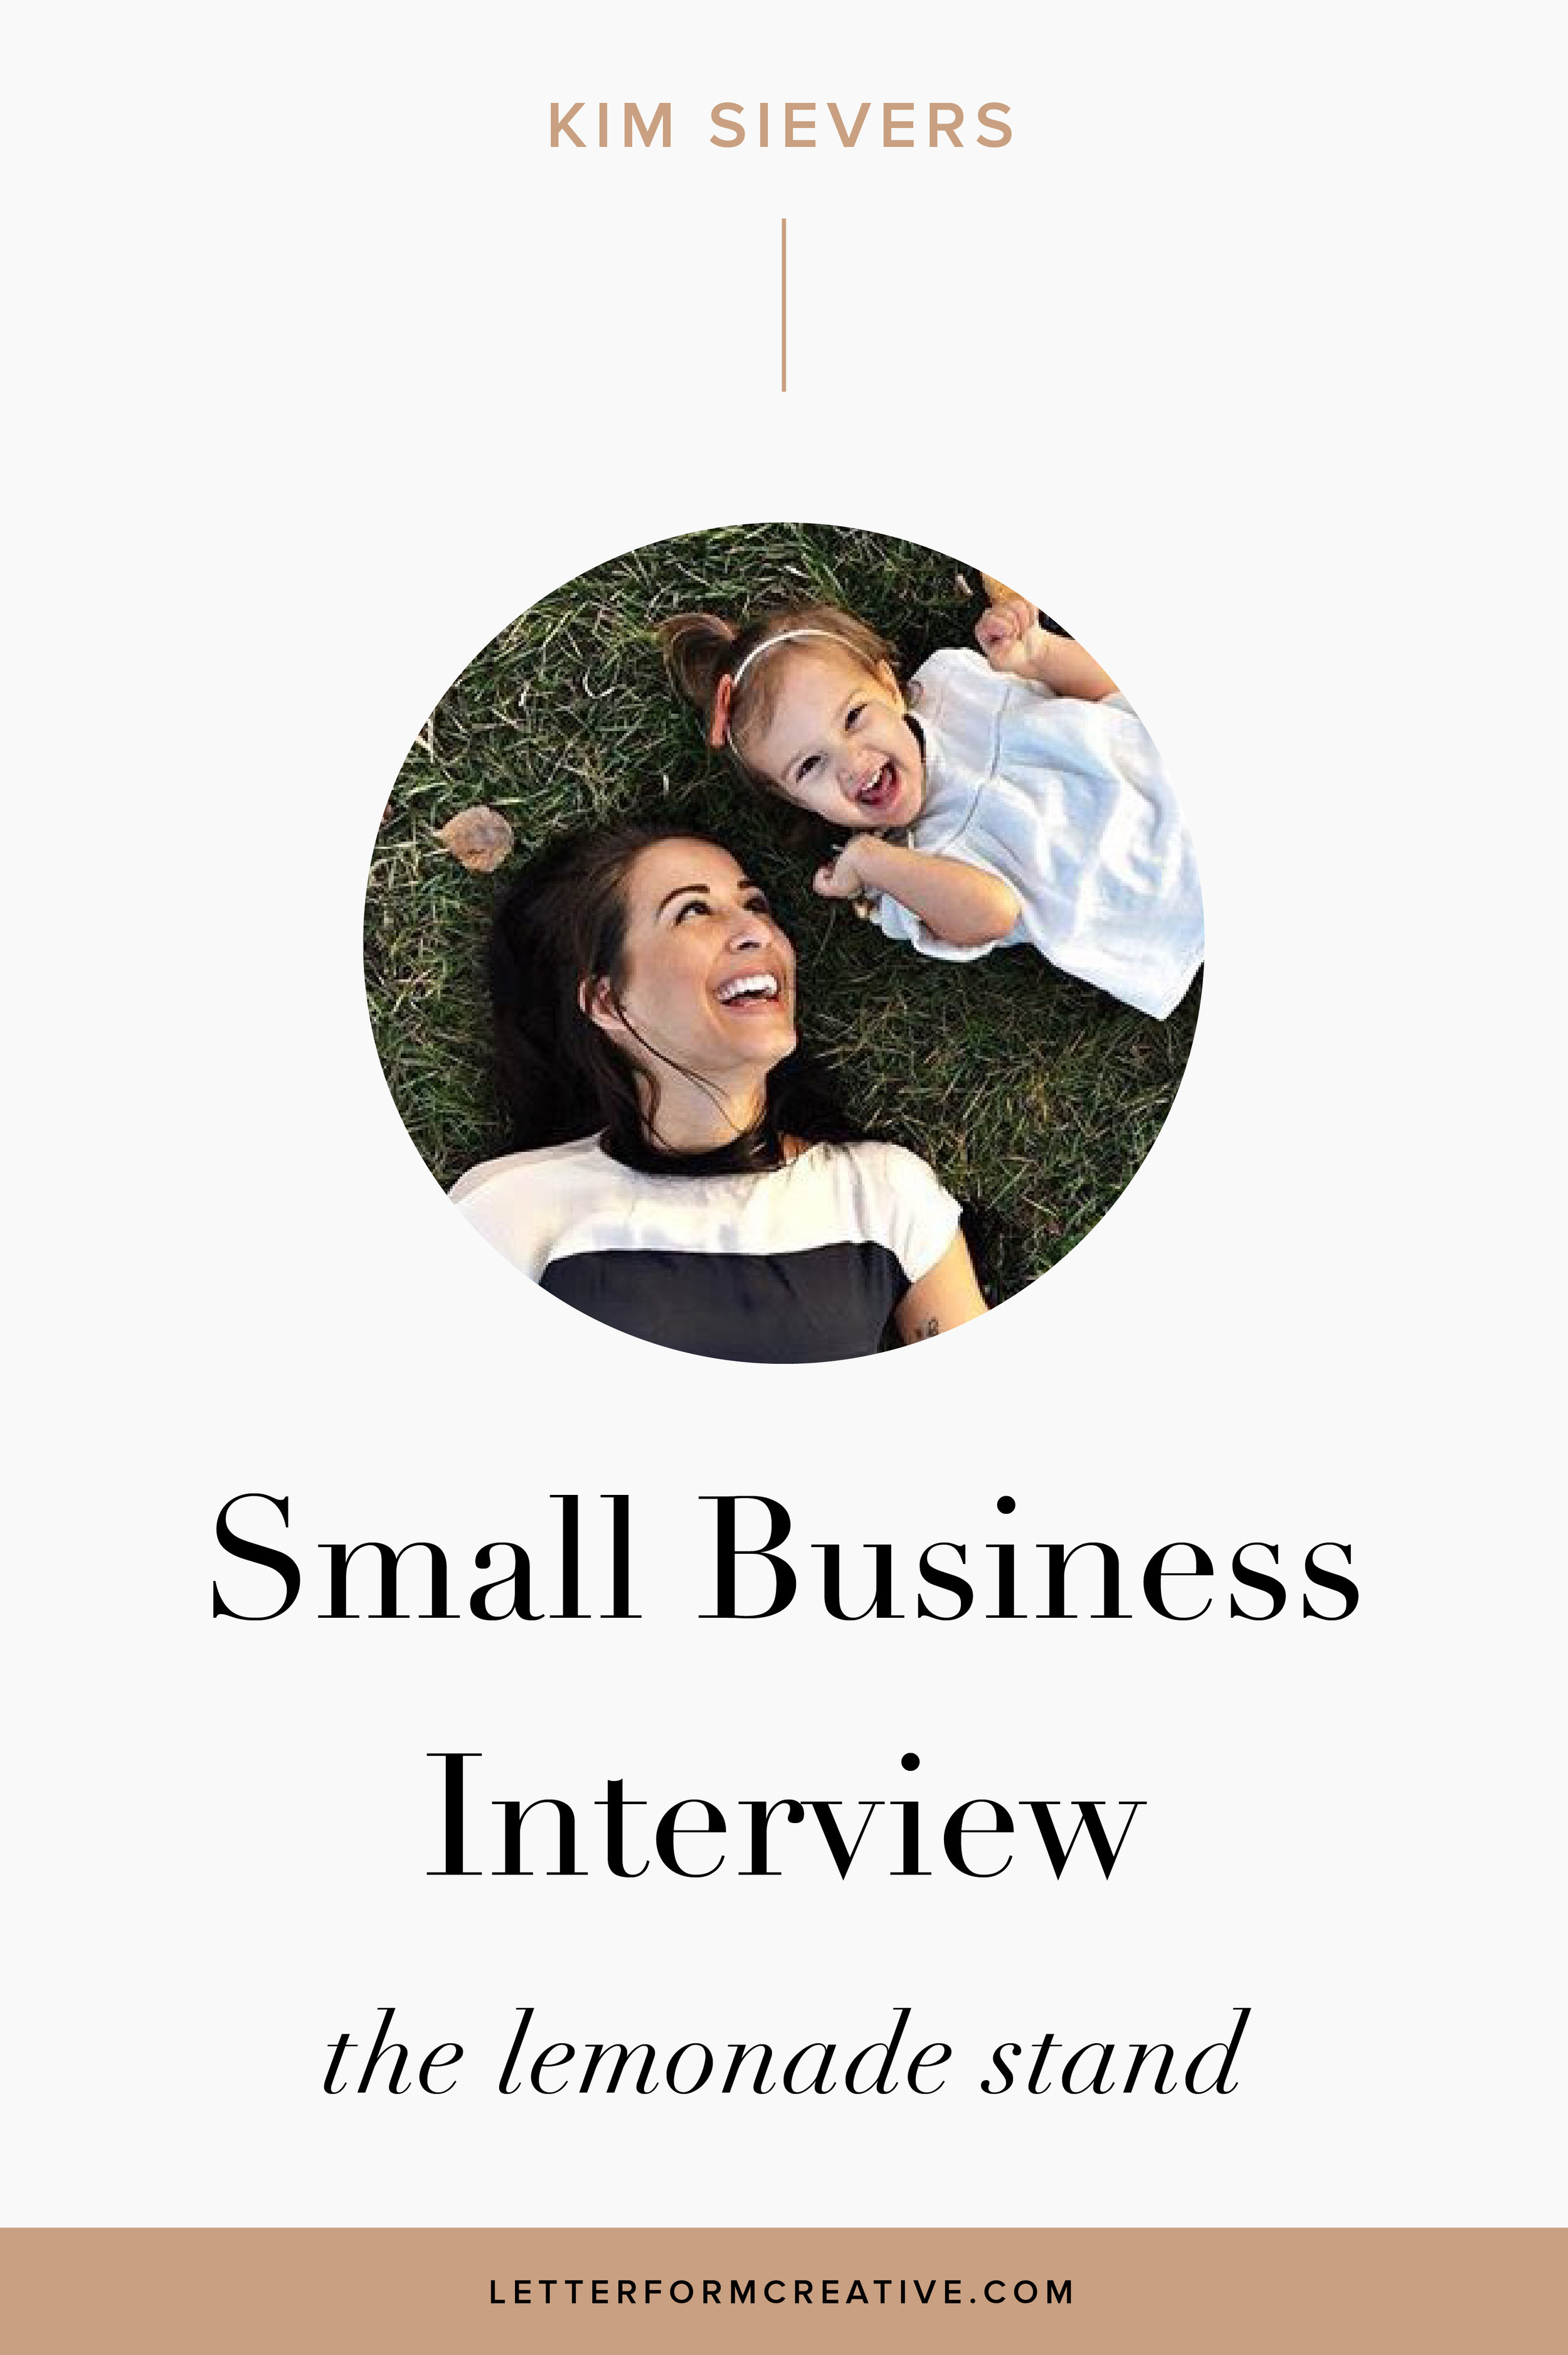 """It's hard to keep motivated sometimes...but every kind word from customers or cute photo shared in my gear makes it easier."" This is one of many great quotes from my small business interview with Kim Sievers, owner The Lemonade Stand  In our interview Kim opens up about the some of the harder aspects of owning an online shop, like coming to terms with all of the competition out there and seeing them succeed on social media. SHe also talks about the perks of being an entrepreneur, such as the flexibility it affords her. Her advice to anyone wanting to start their own business is do your research! Click through for more great start up and business planing tips,  ideas, and Inspiration!"